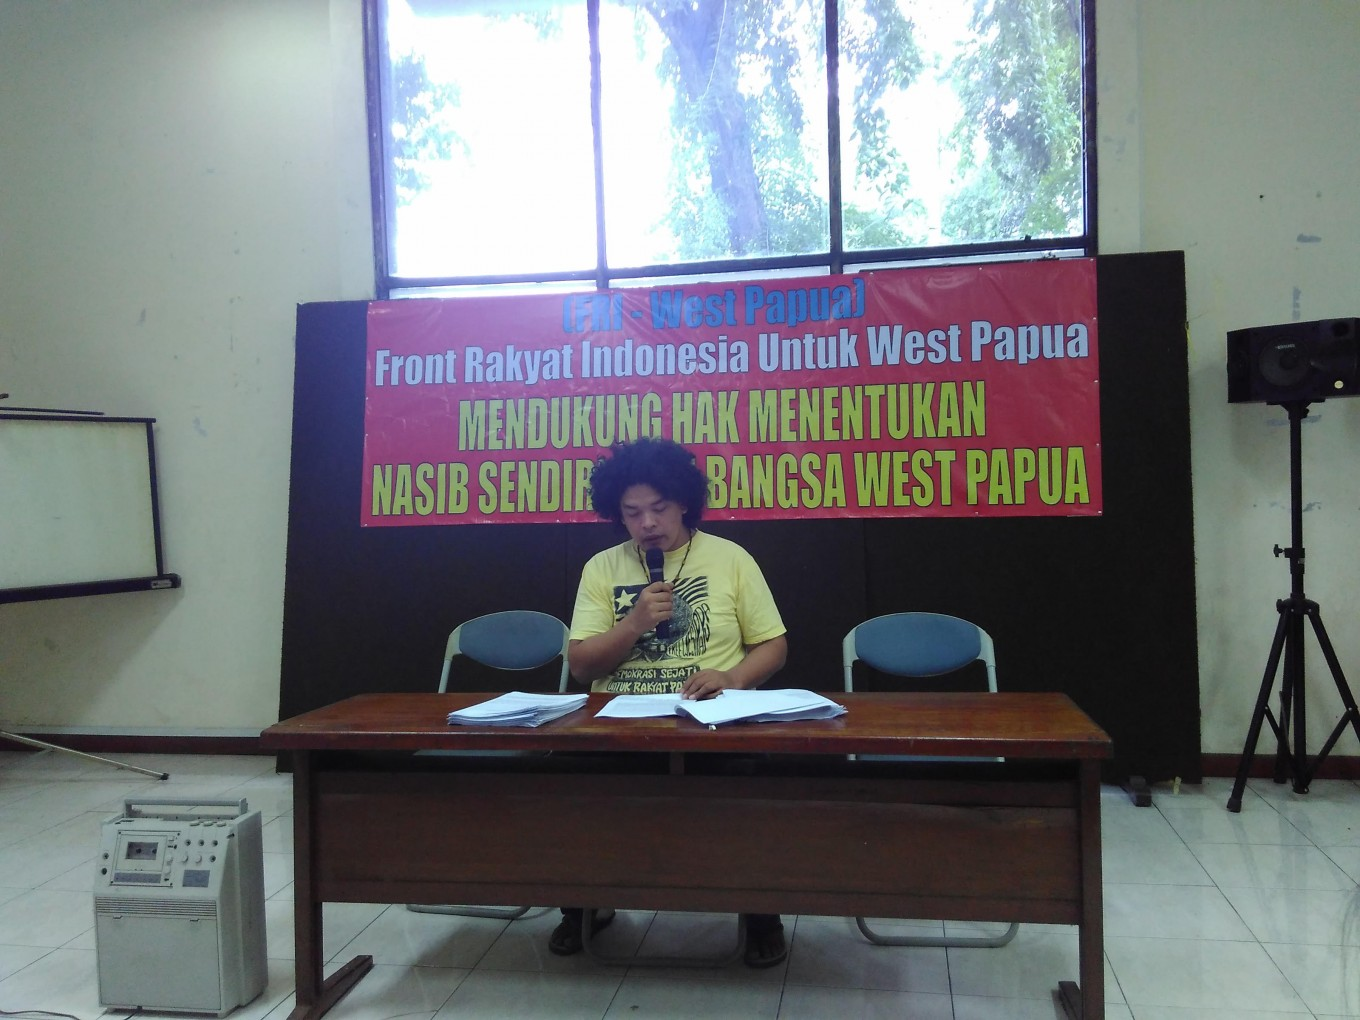 Group supports referendum for West Papua